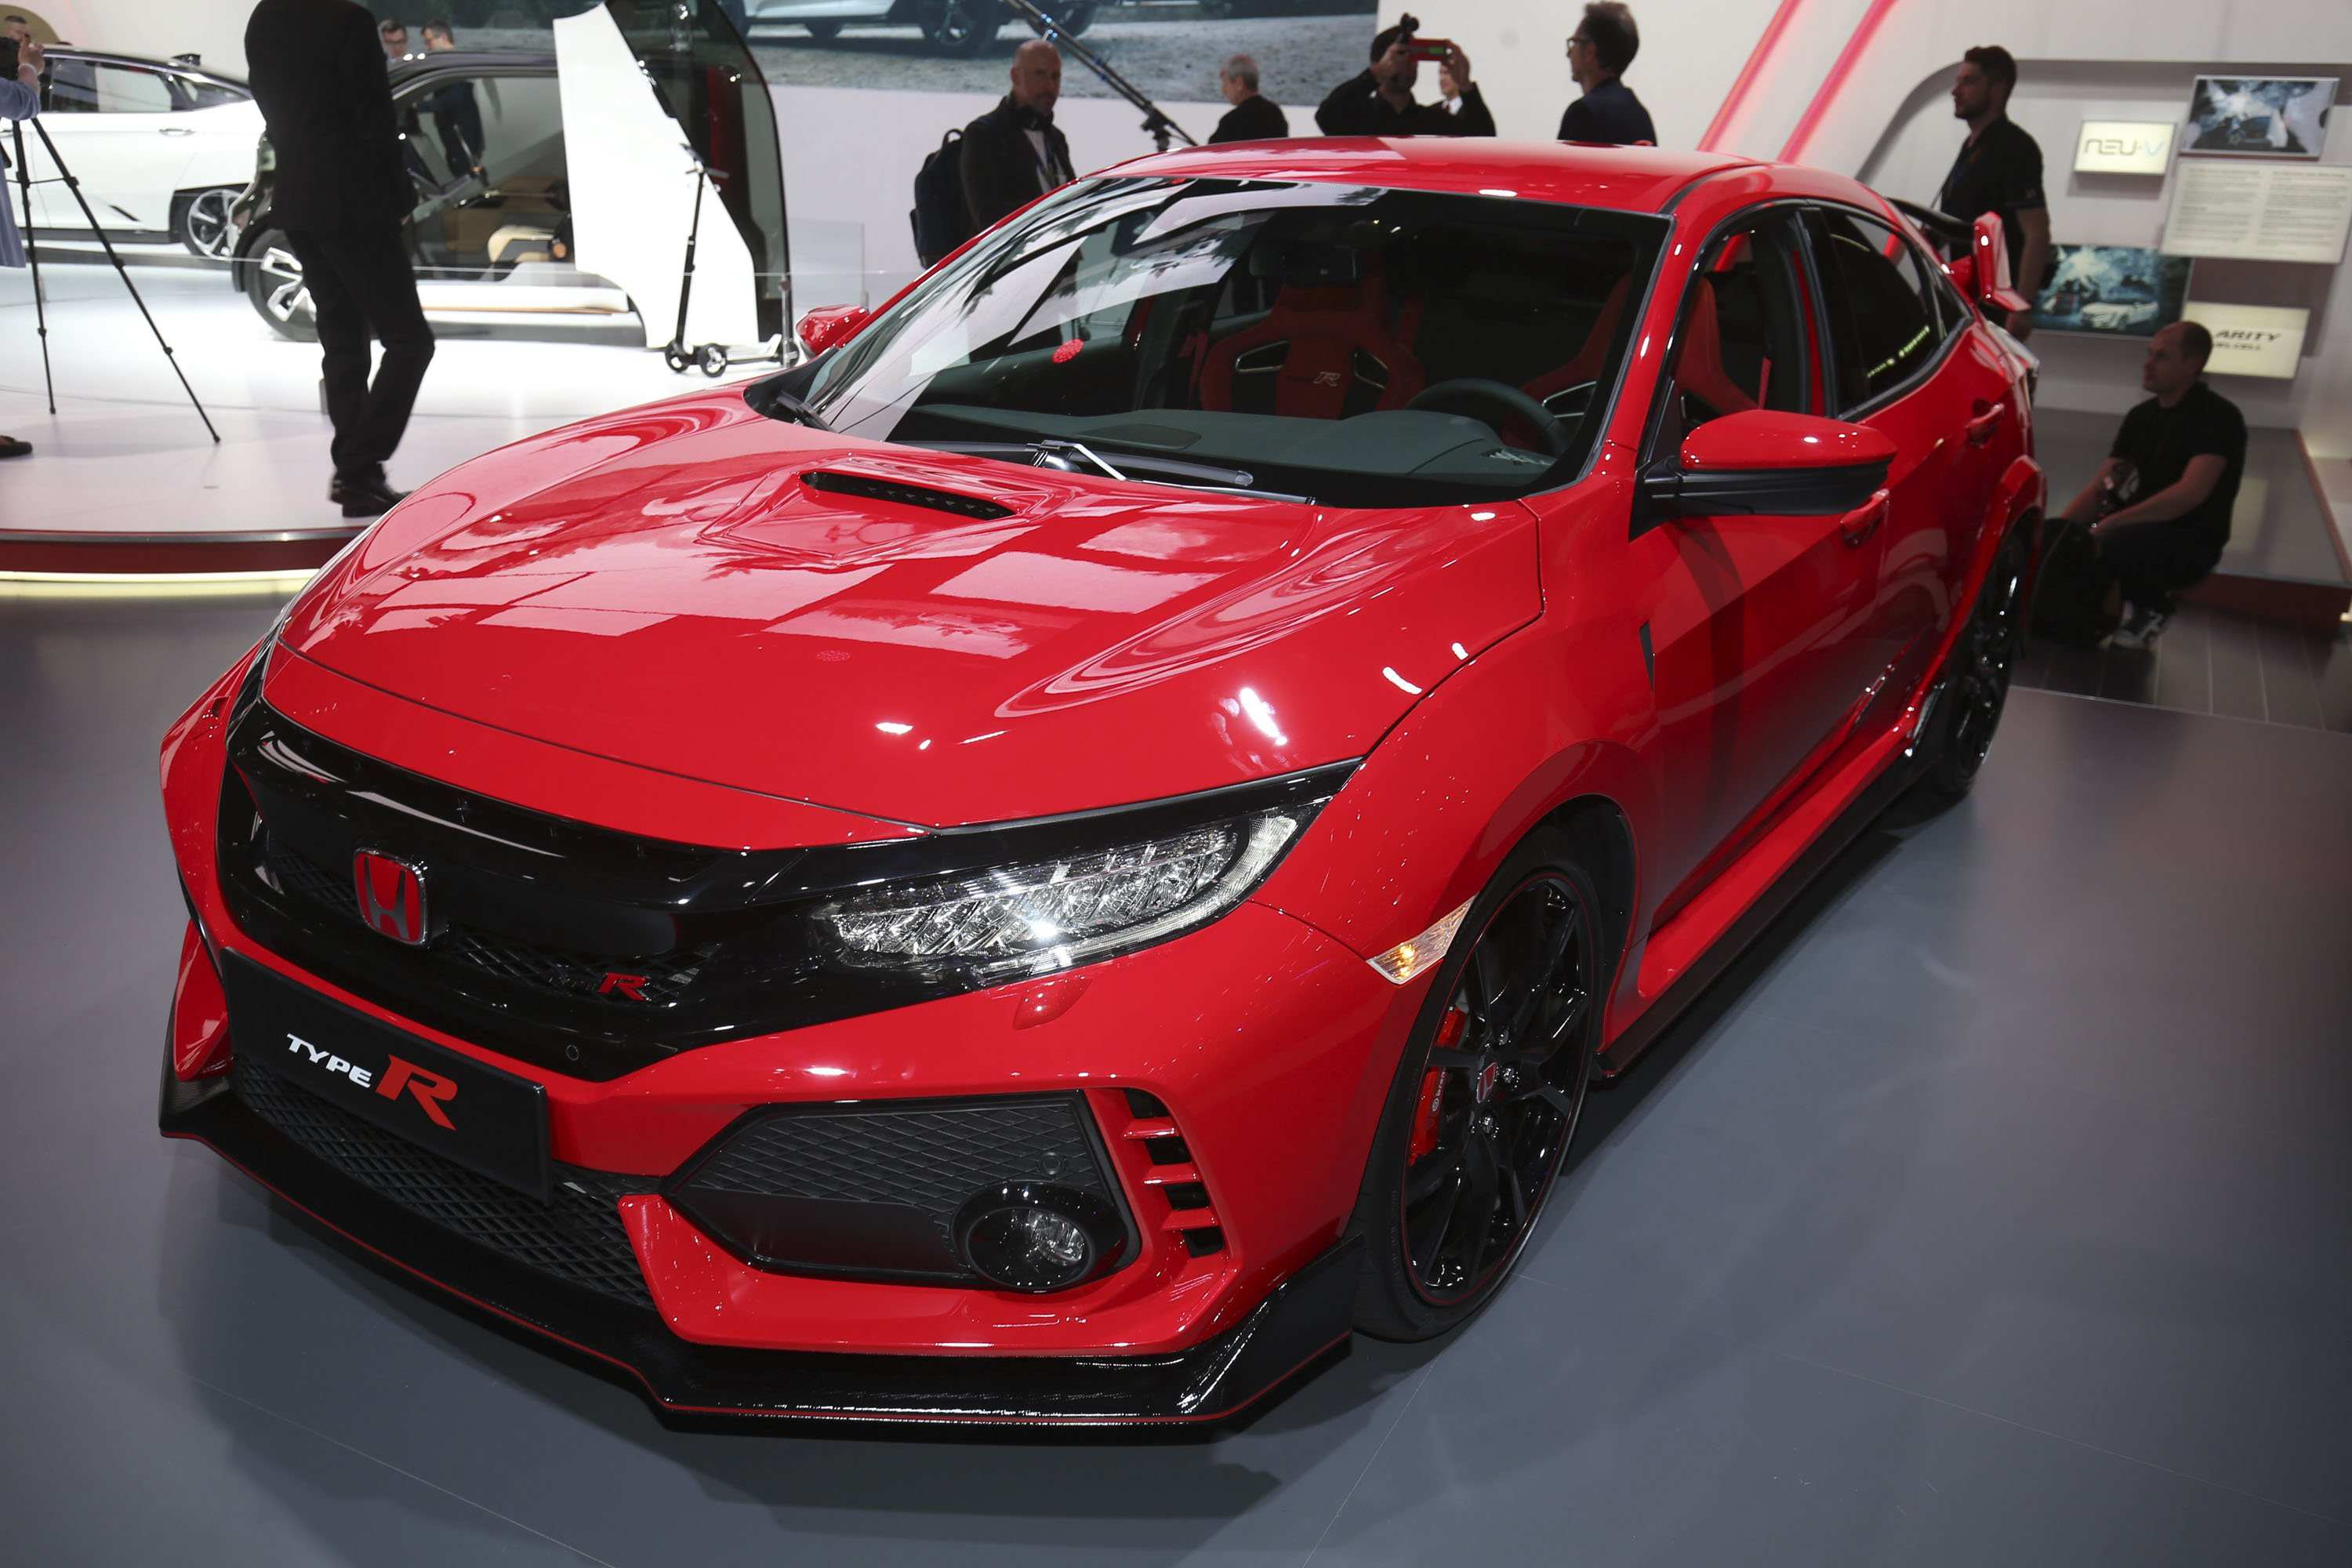 82 All New 2019 Honda Accord Type R Picture for 2019 Honda Accord Type R